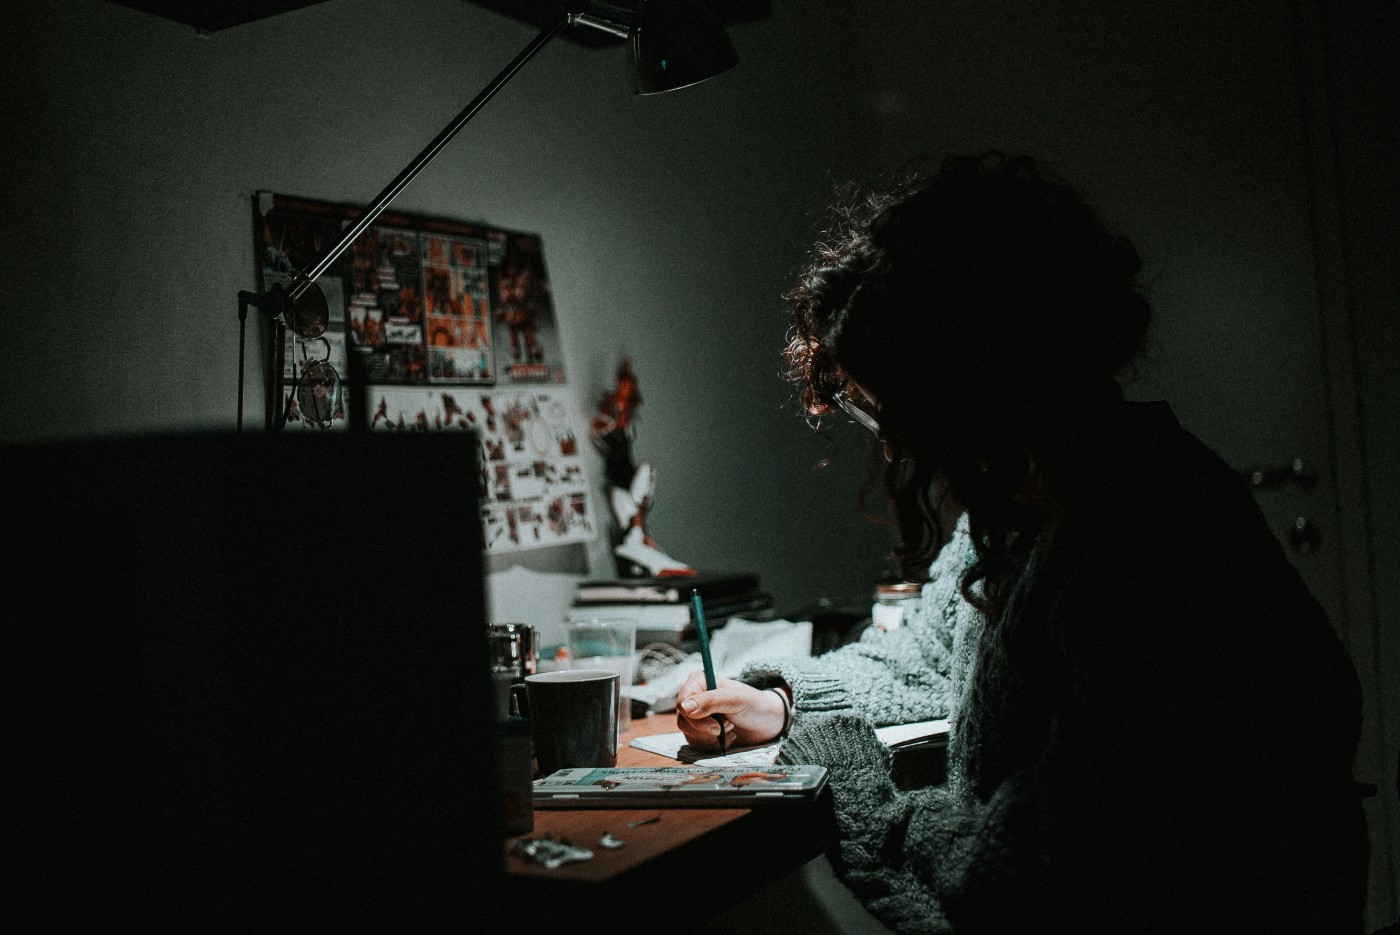 Girl writing by her desk under the light of a lamp